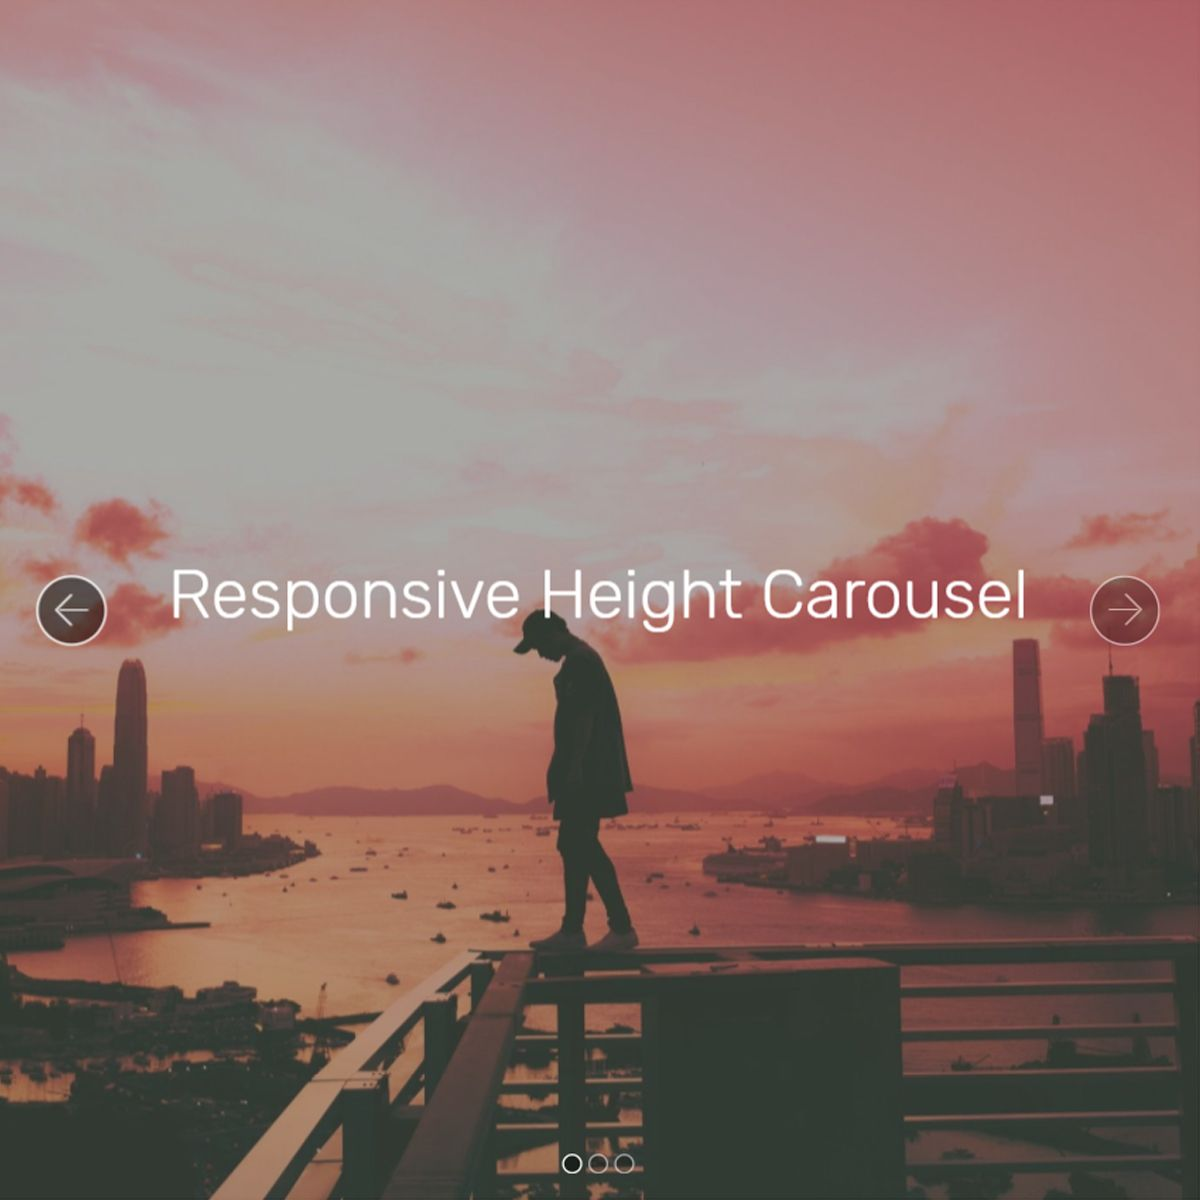 HTML Bootstrap Image Carousel